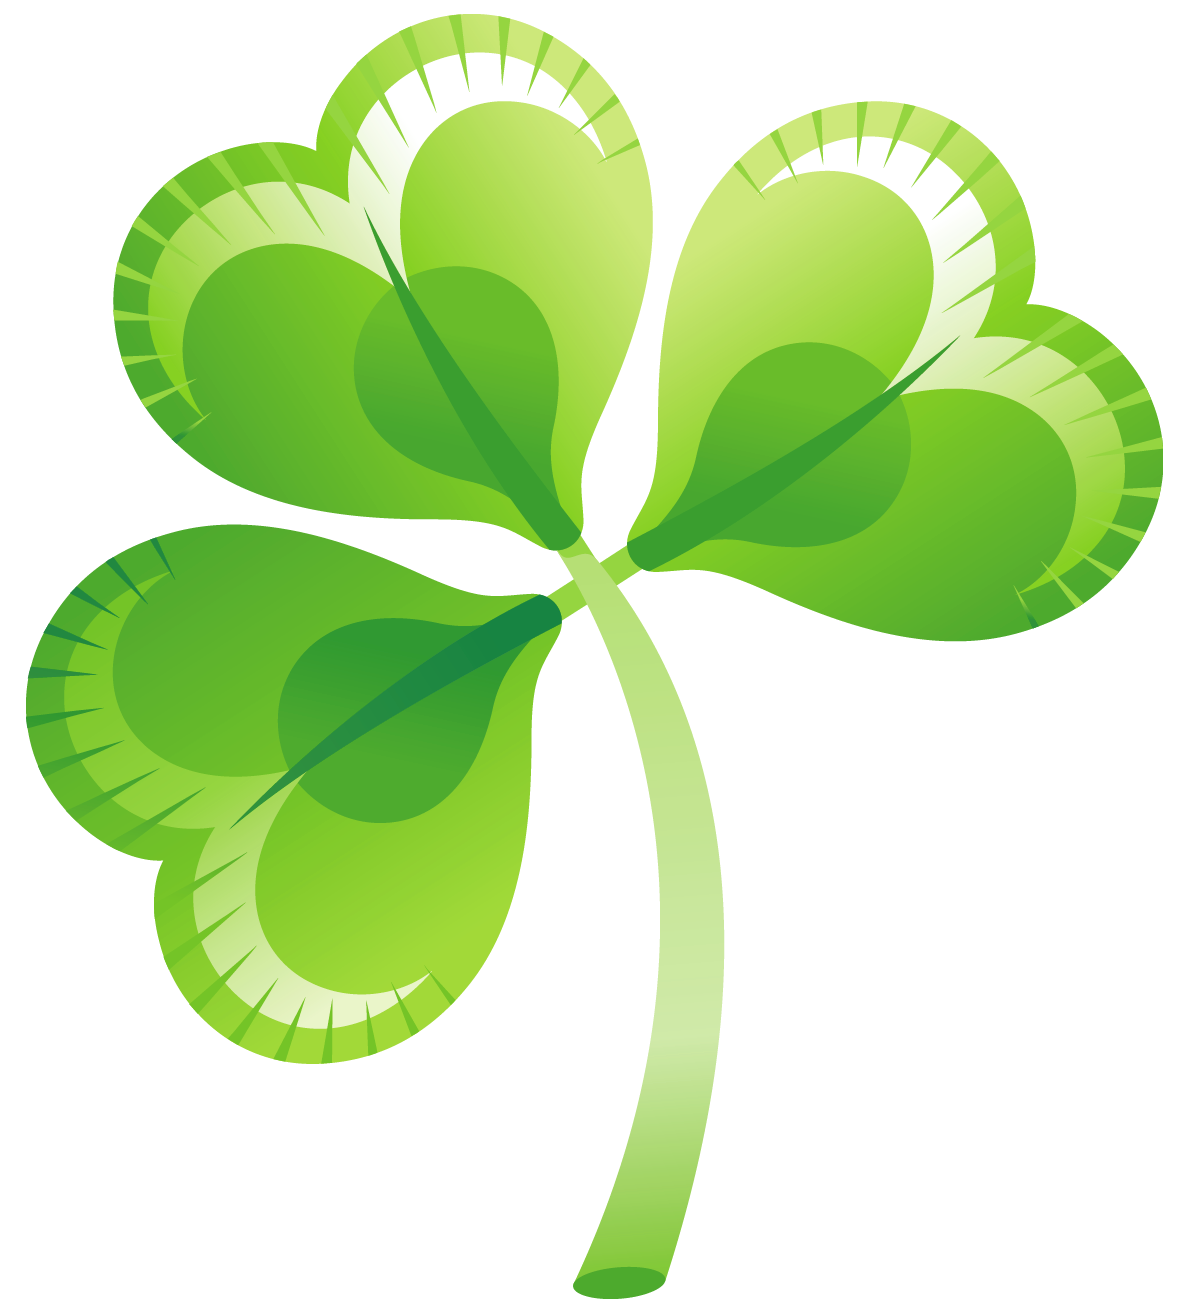 download shamrock free png photo images and clipart freepngimg